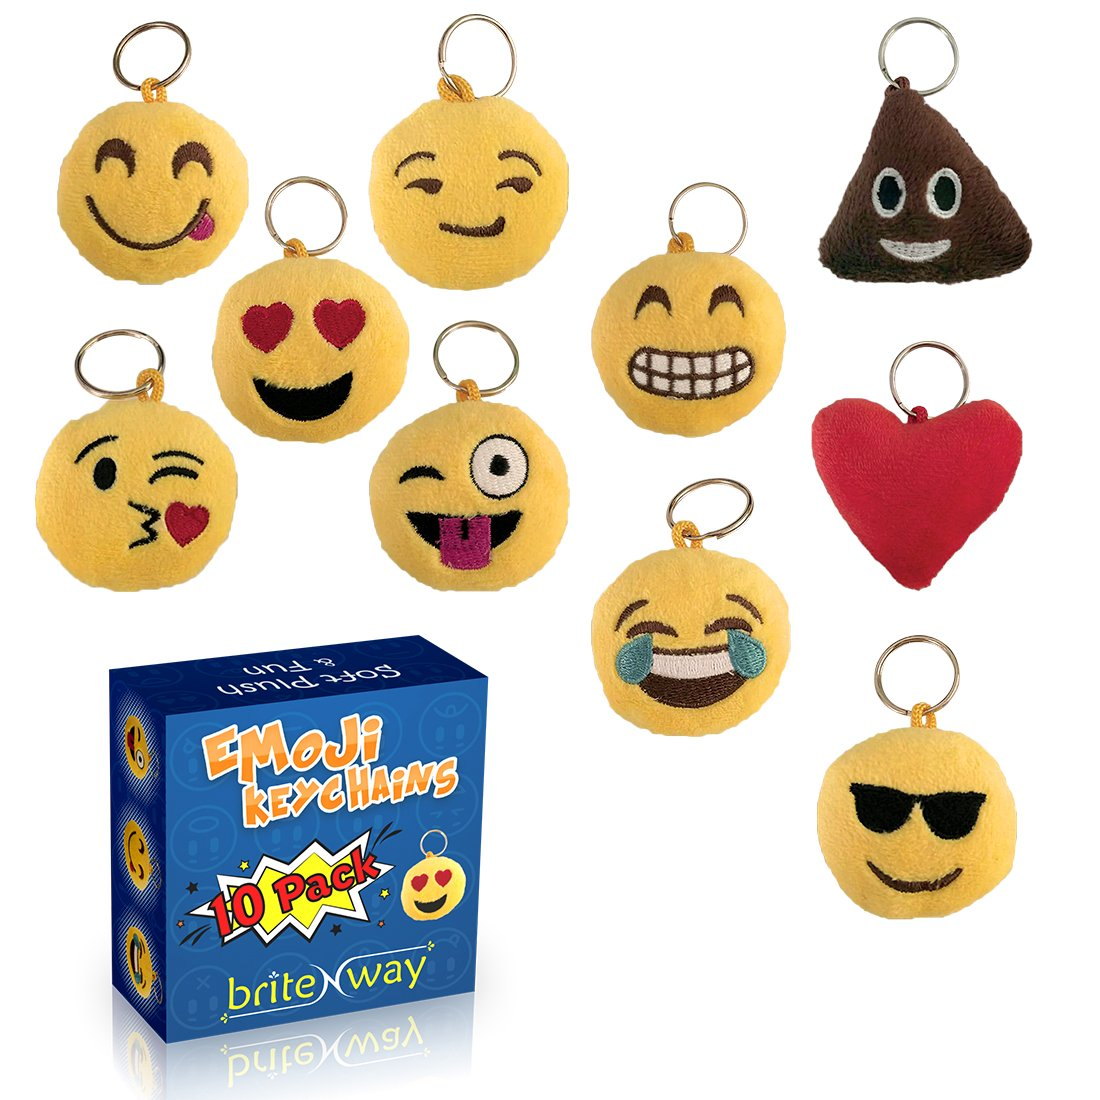 Emoji Keychain Round Faces Set of 10 - Cute Sweet Soft & Plush Yellow Pillow Keychains - Durable Metal Hook Ring - Funny Children Party Favors - Easy Installation On Backpacks, Purses, Phones & Stuff briteNway BRTN00142